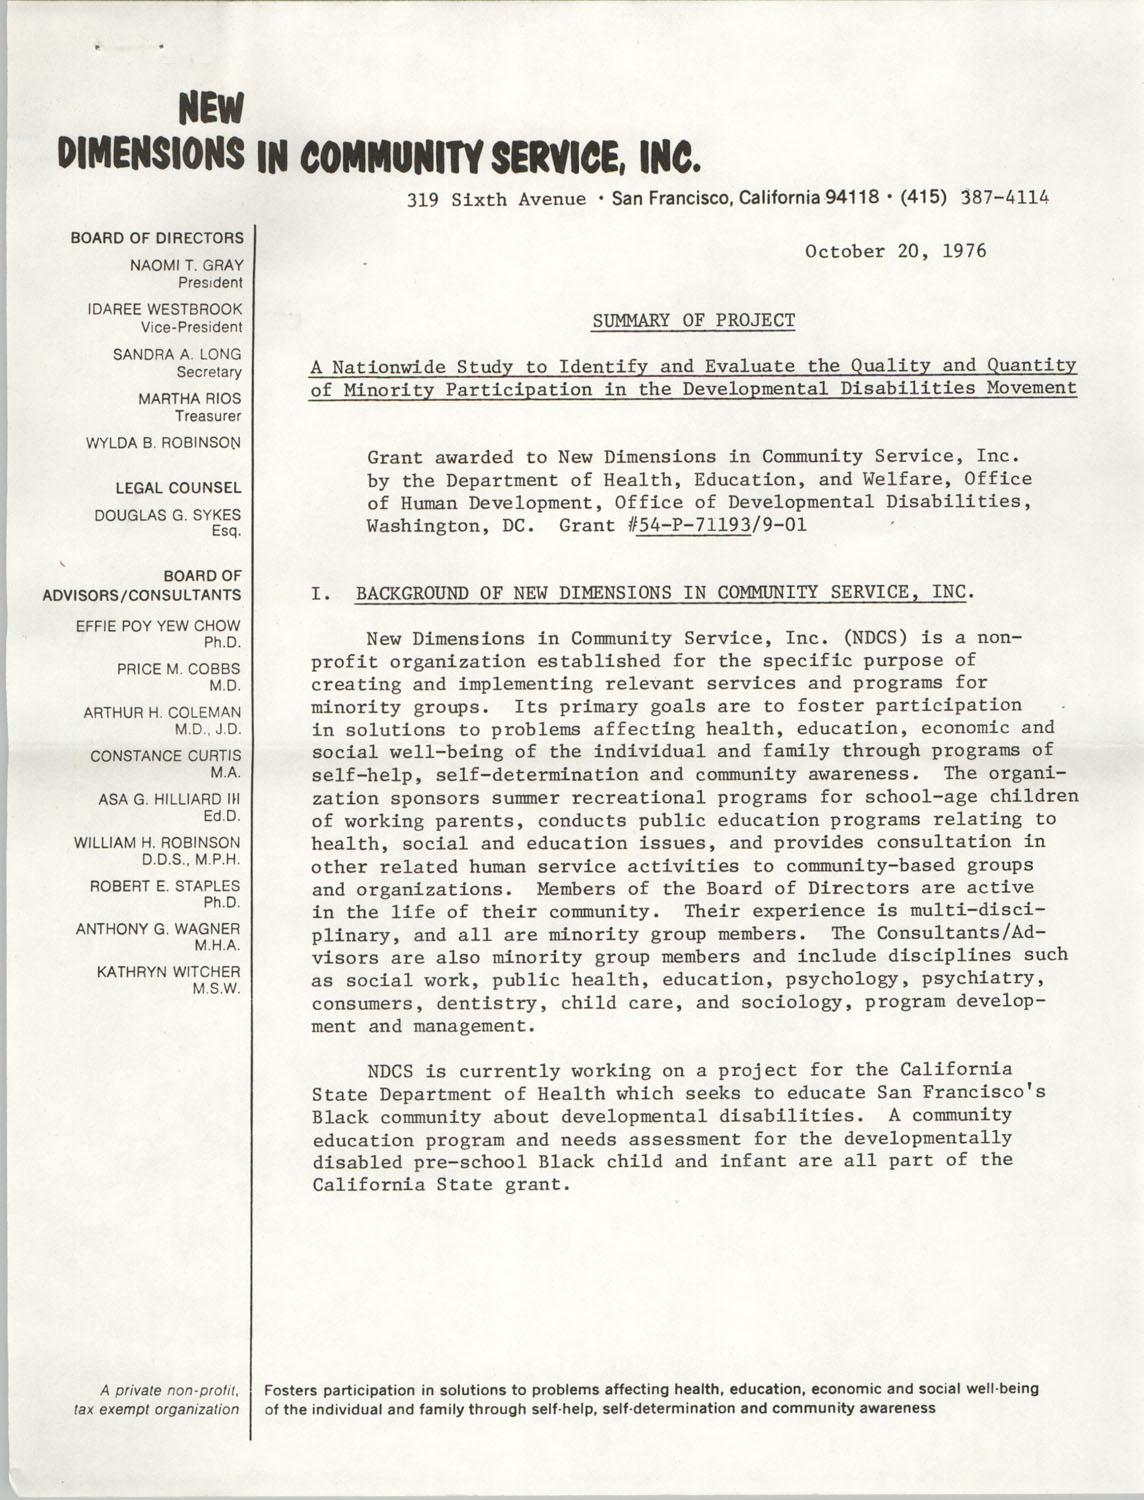 Summary of Project, Nationwide Development Disabilities Study, October 20, 1976